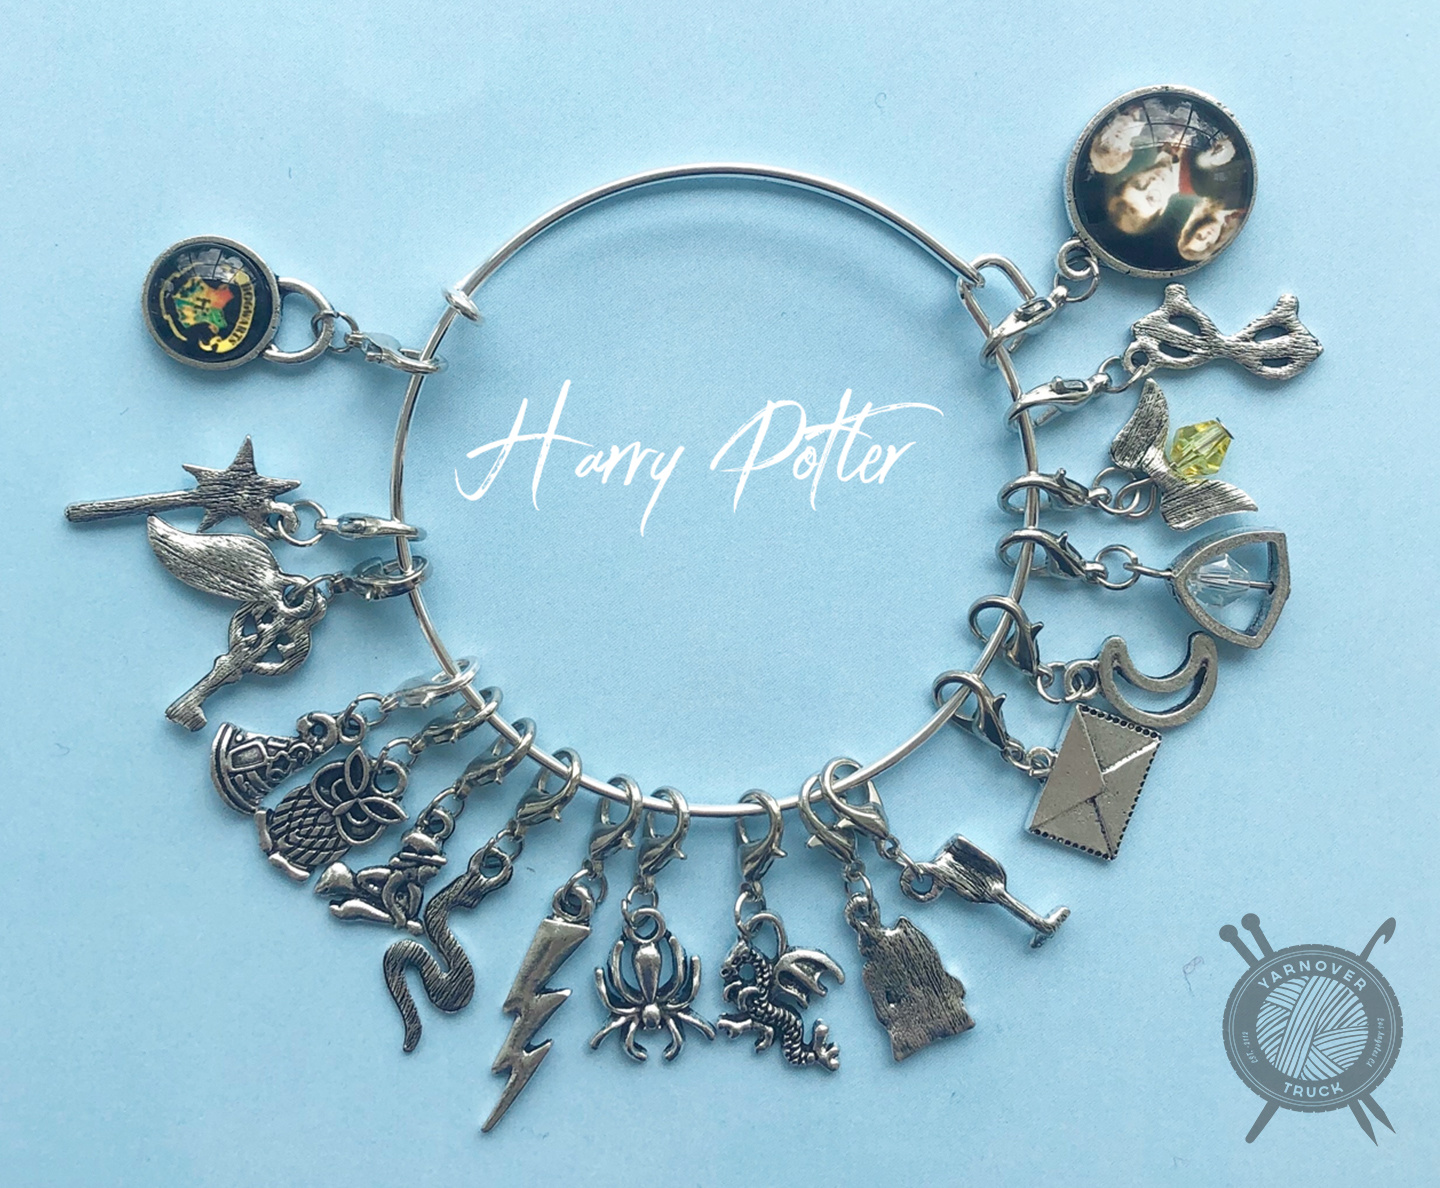 The Sexy Knitter Harry Potter Themed Stitch Marker Bracelet for Crocheting